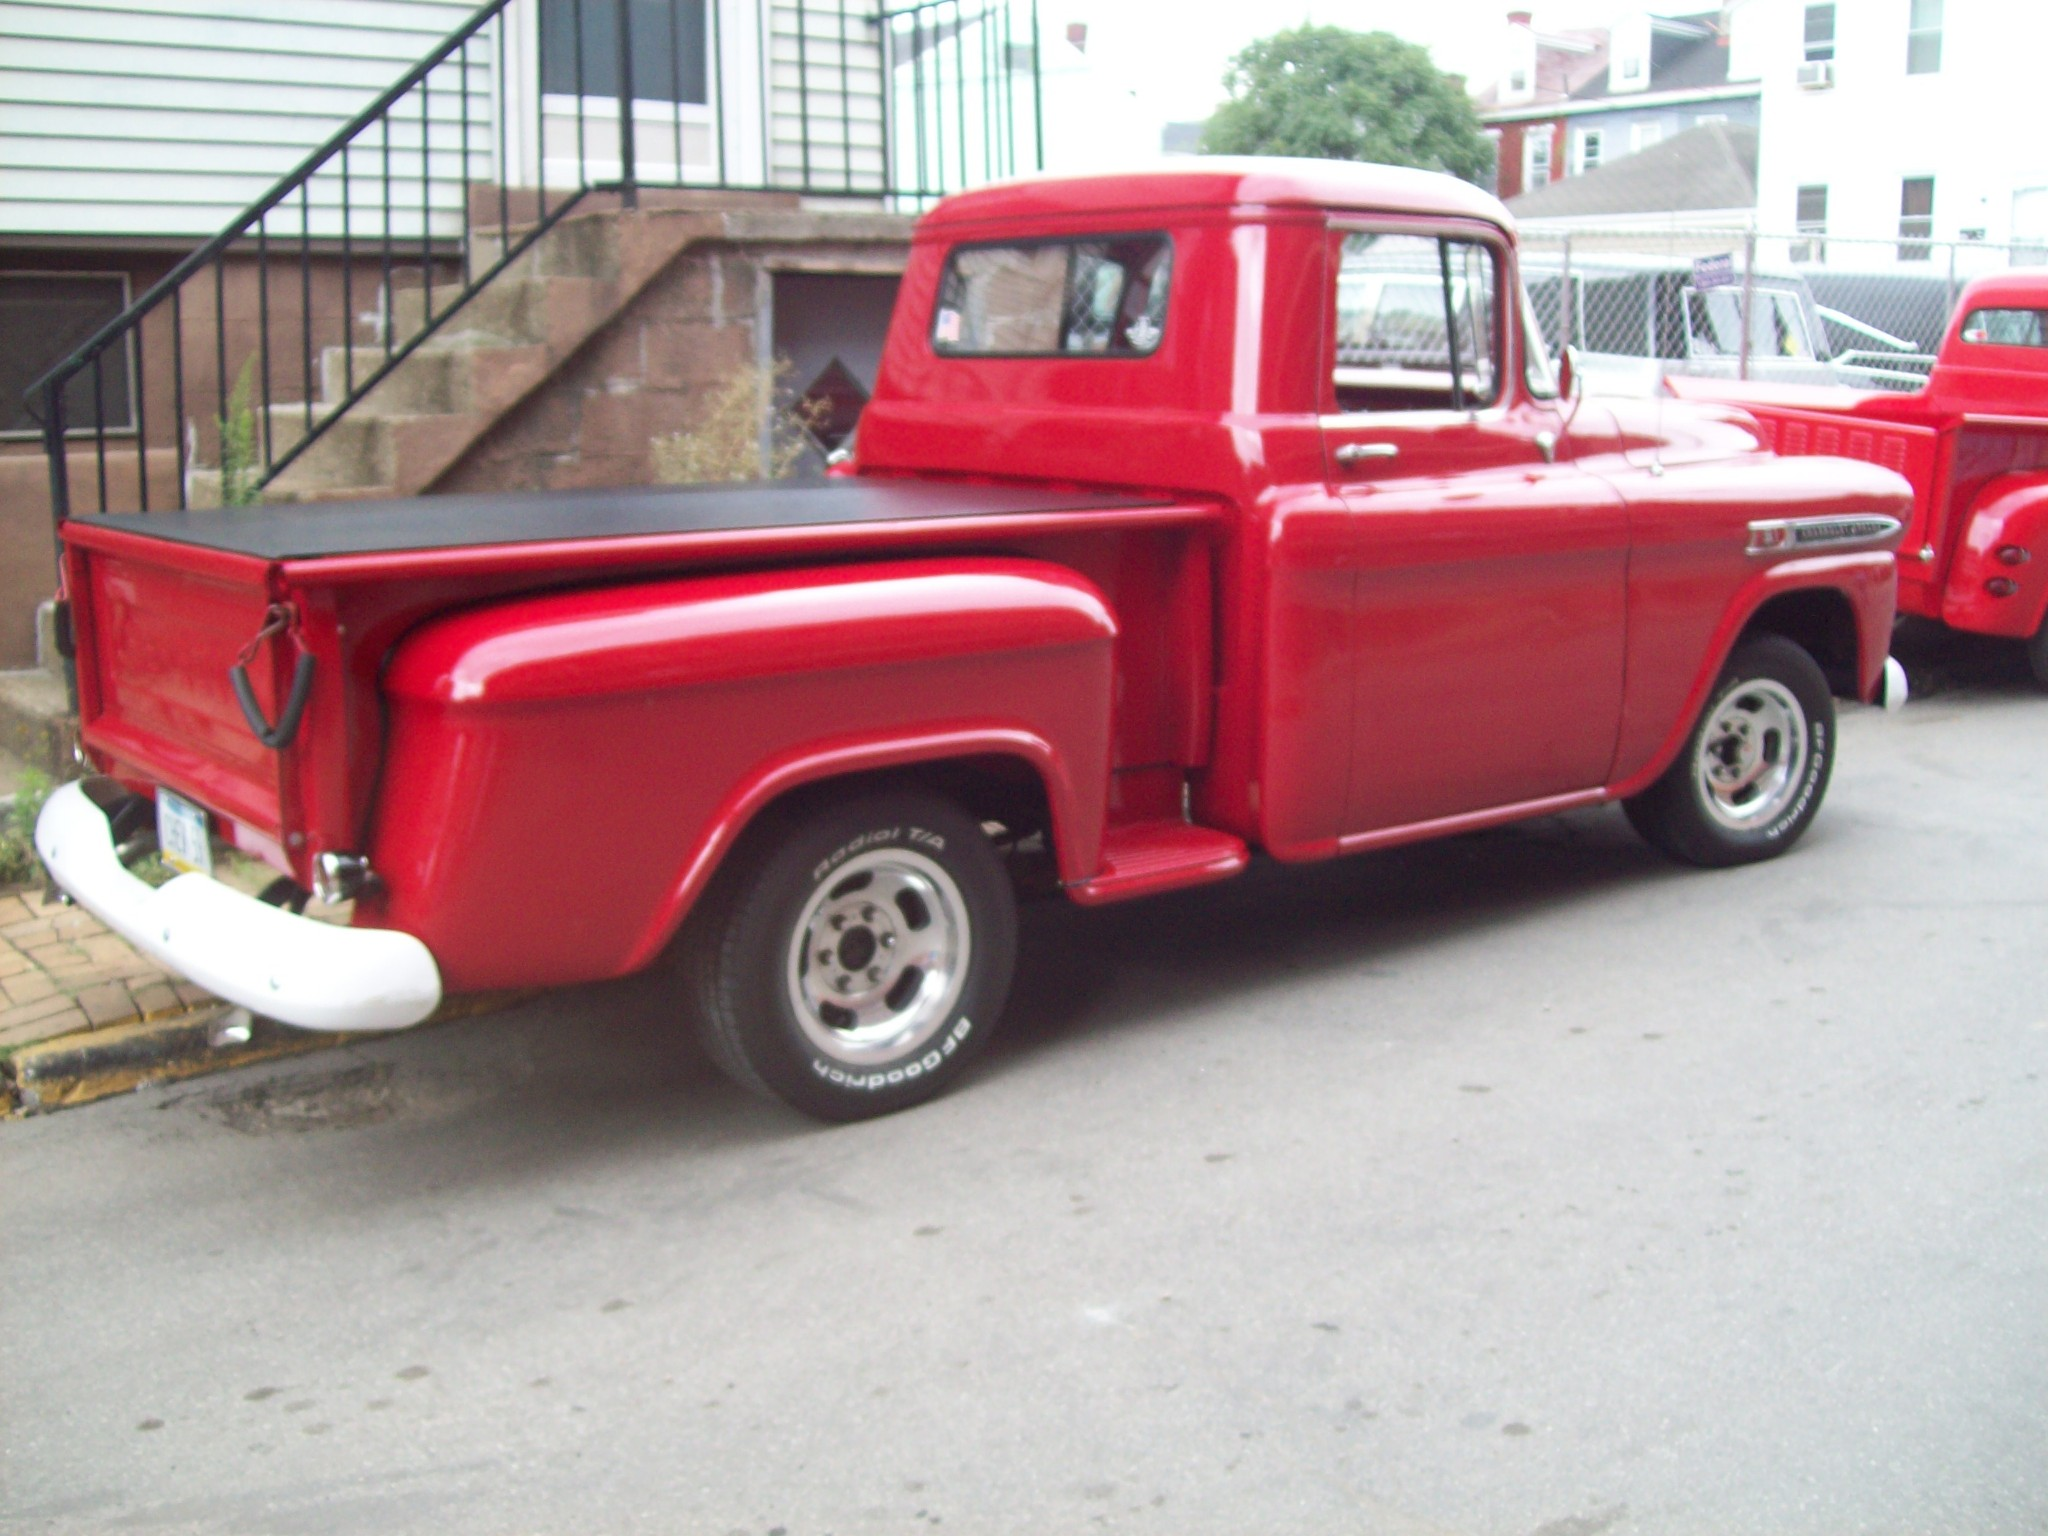 Photo: There's a certain charm to vintage pickup trucks,